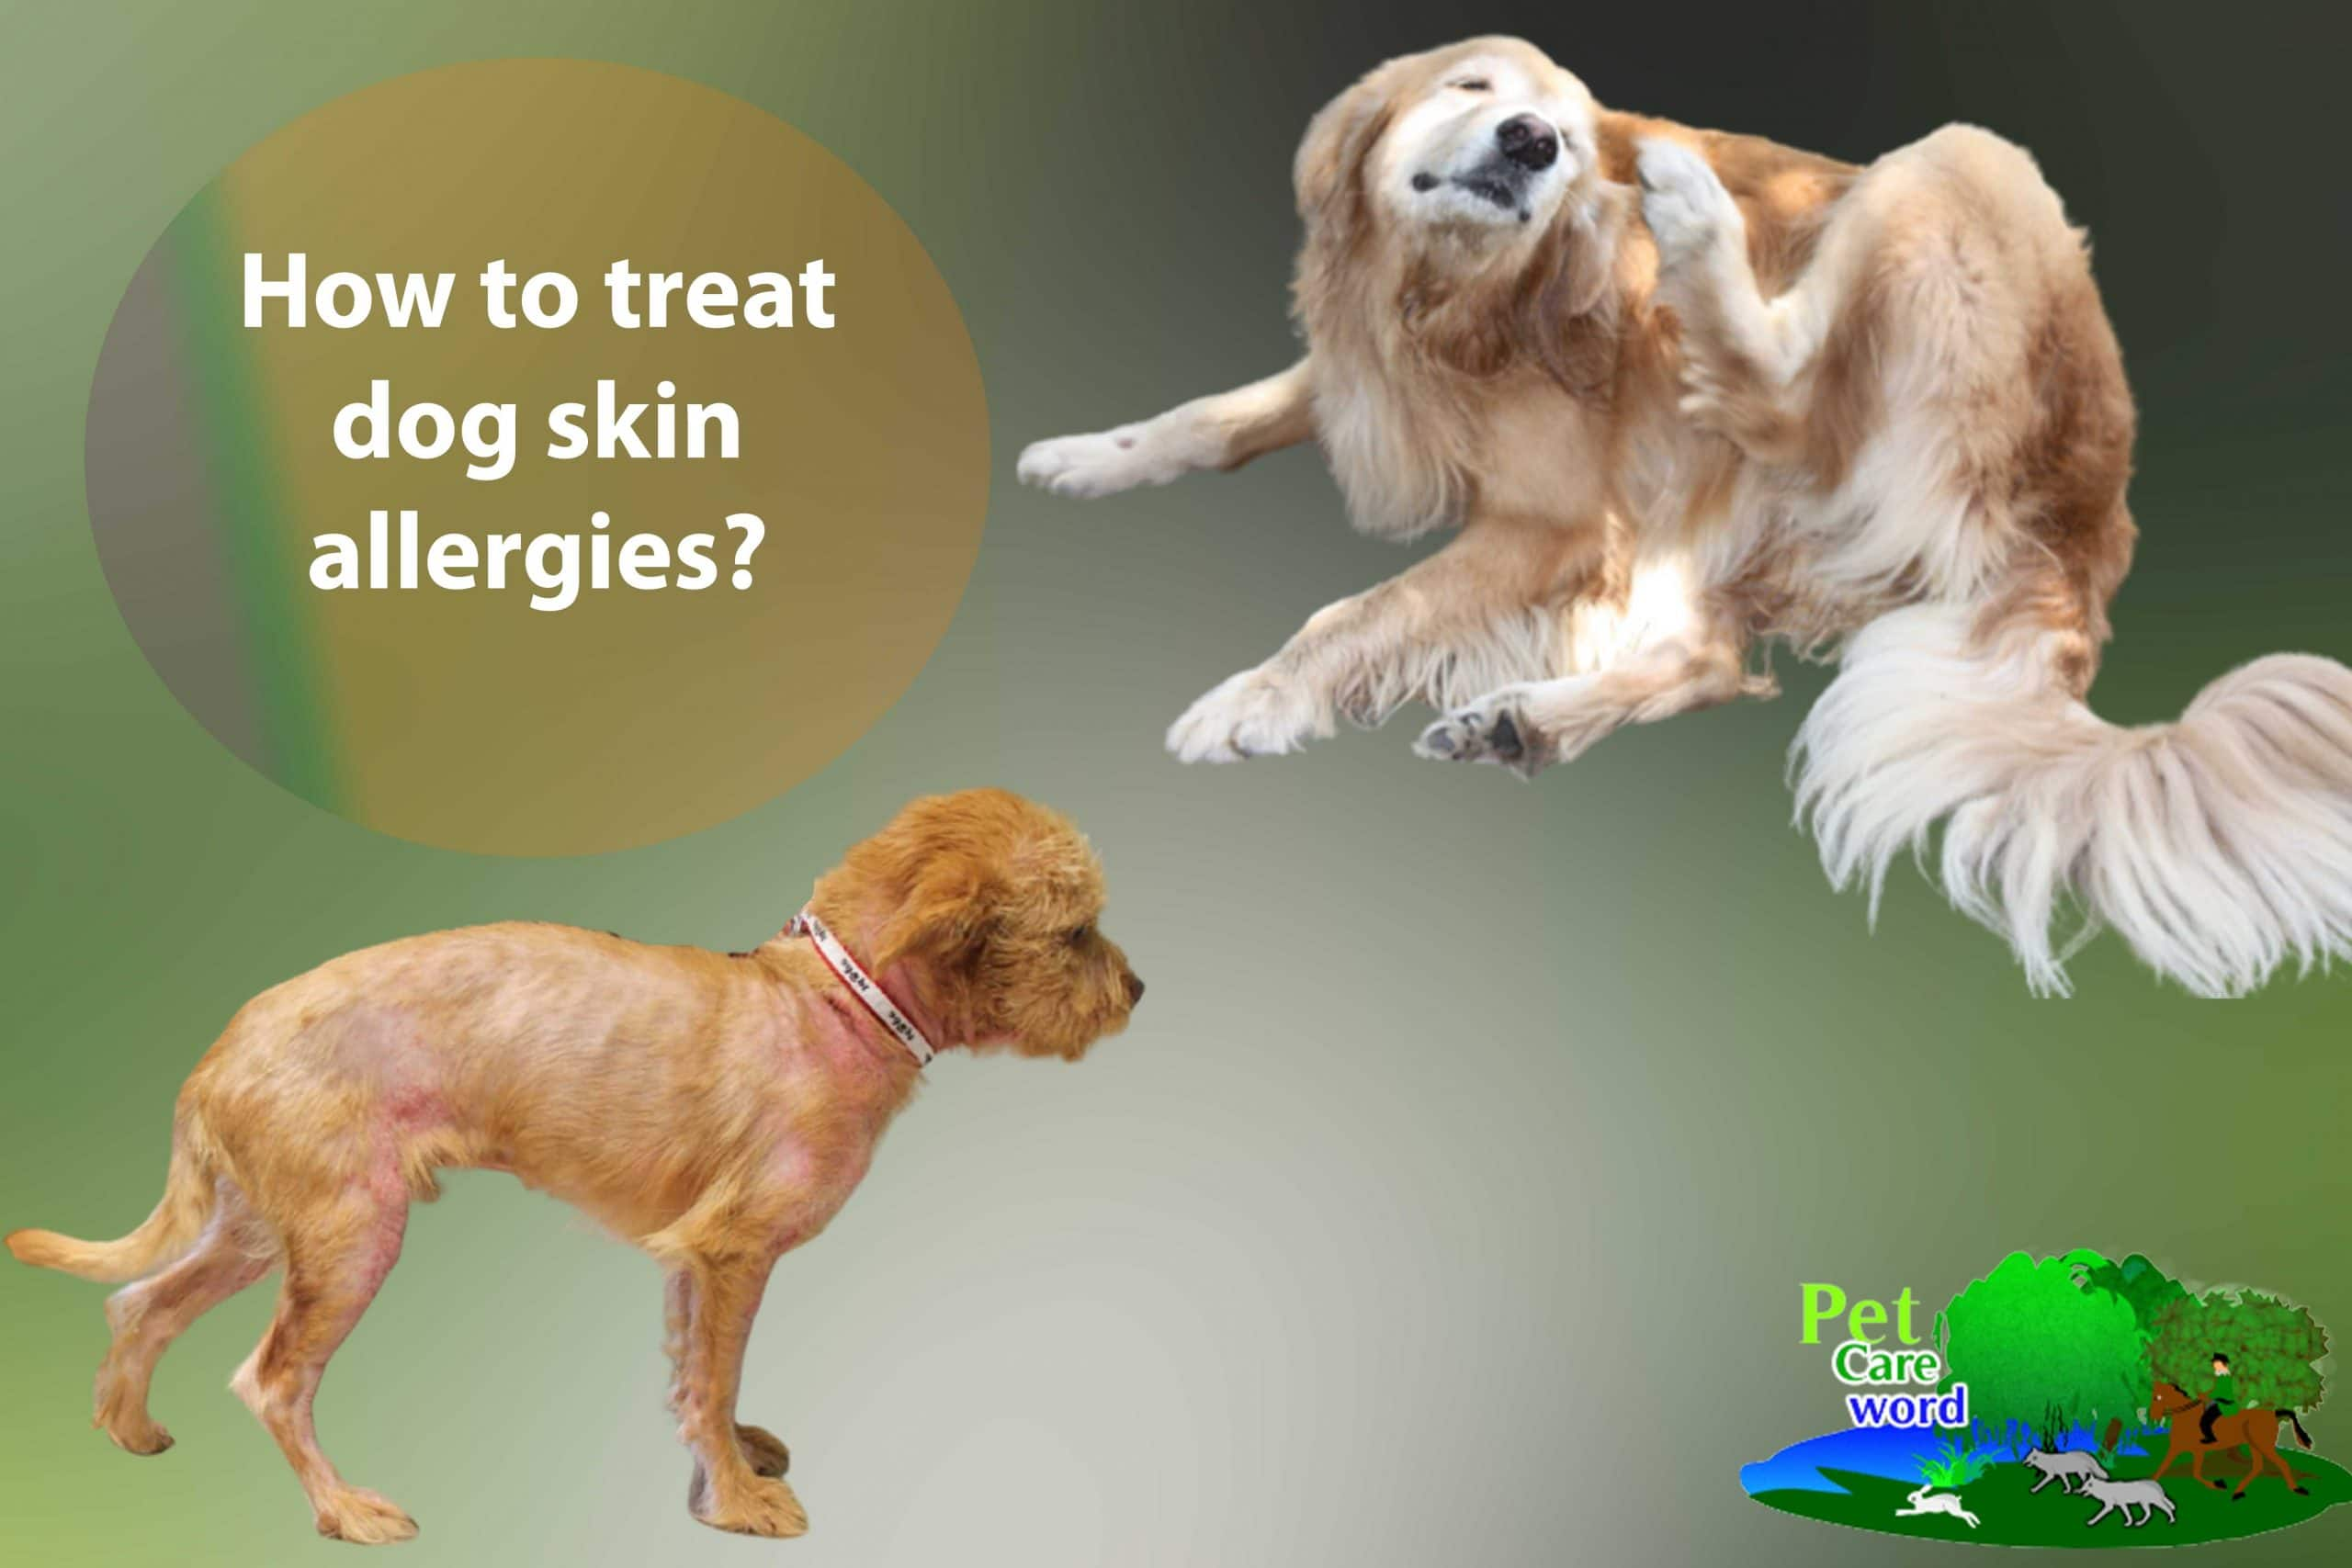 How to treat dog skin allergies?